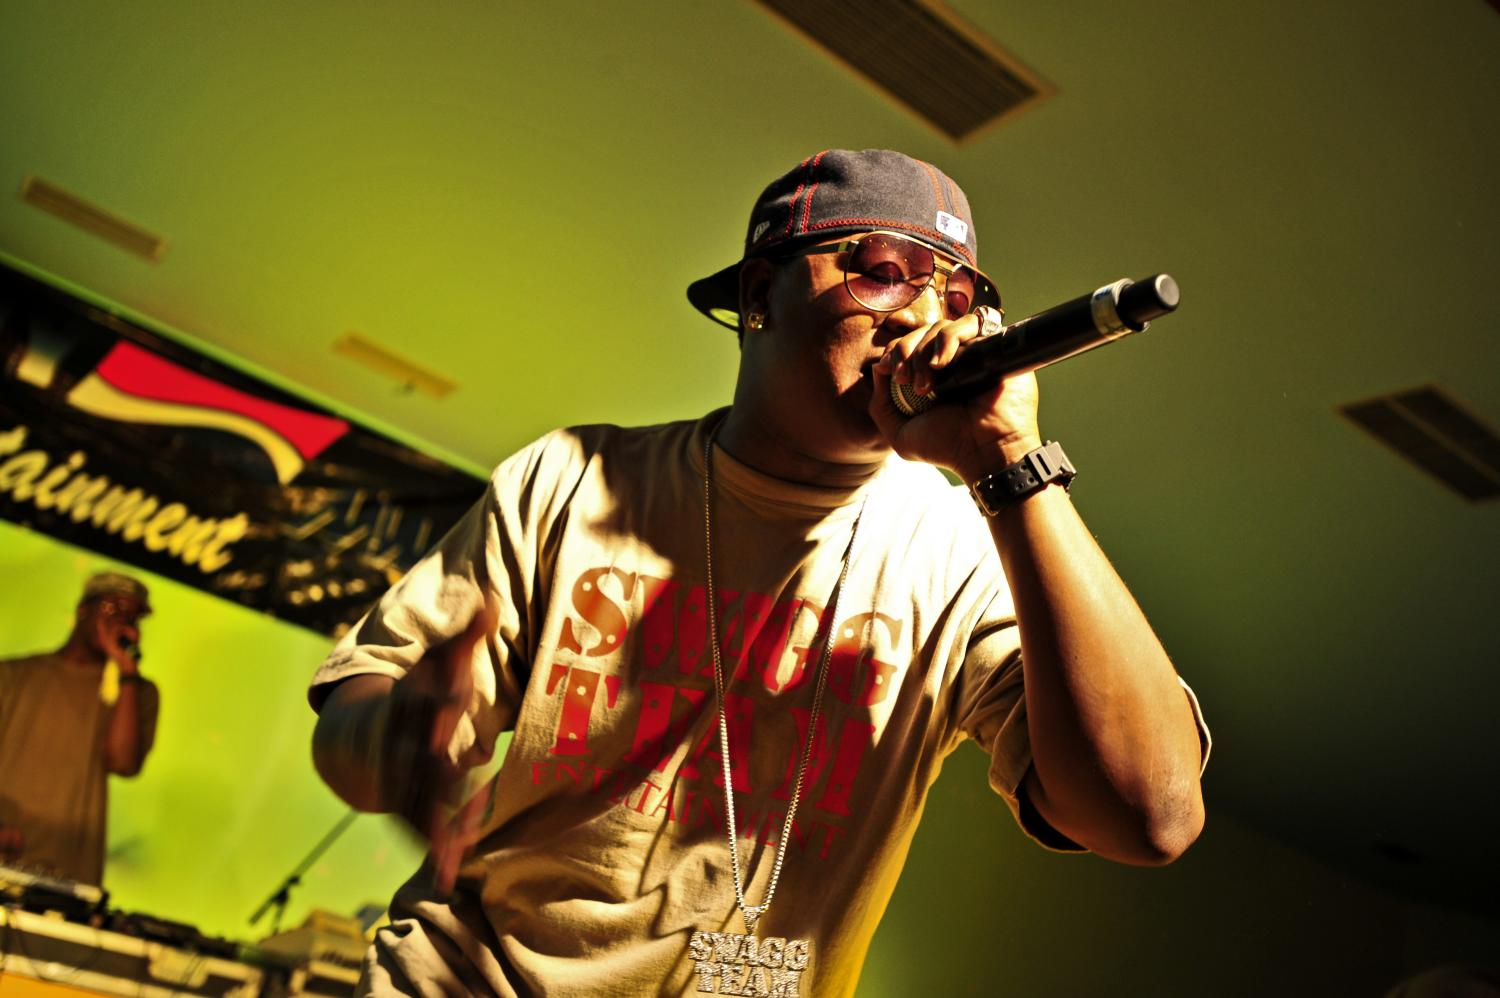 Yung Joc performs for military members at a U.S. naval base in Africa. Photo courtesy of Wikimedia Commons